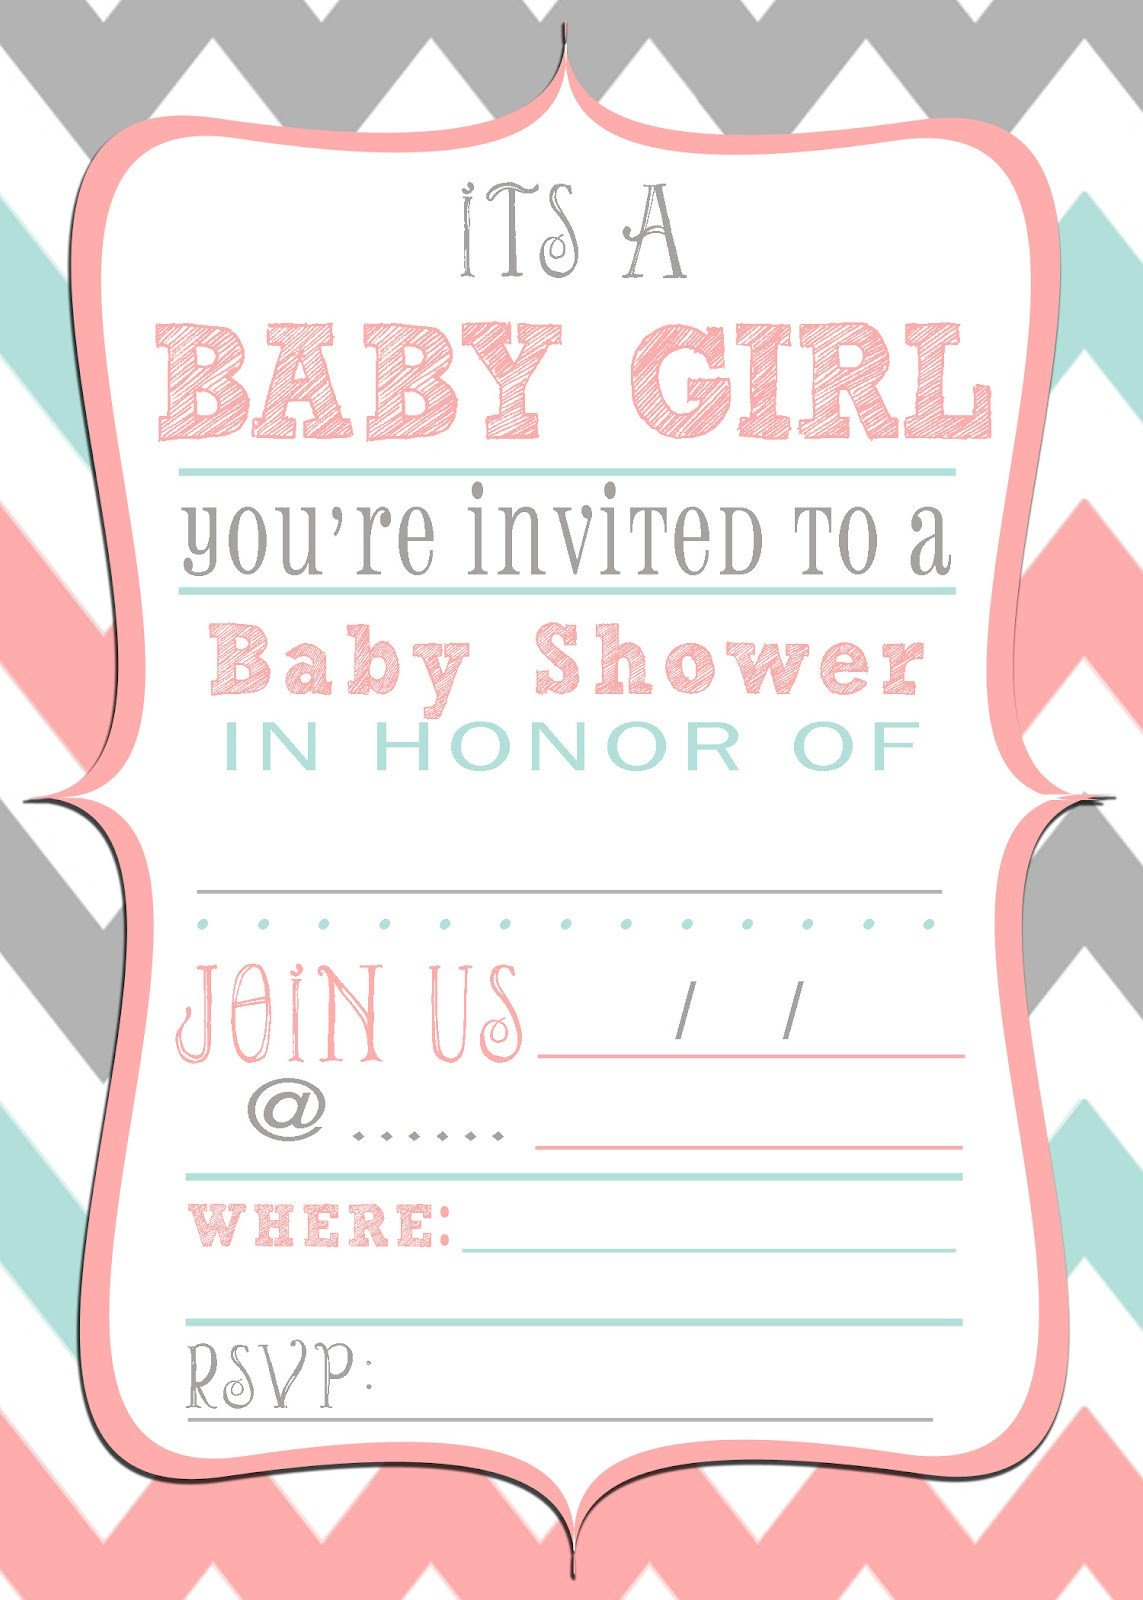 Baby Shower Card Template Mrs This and that Baby Shower Banner Free Downloads